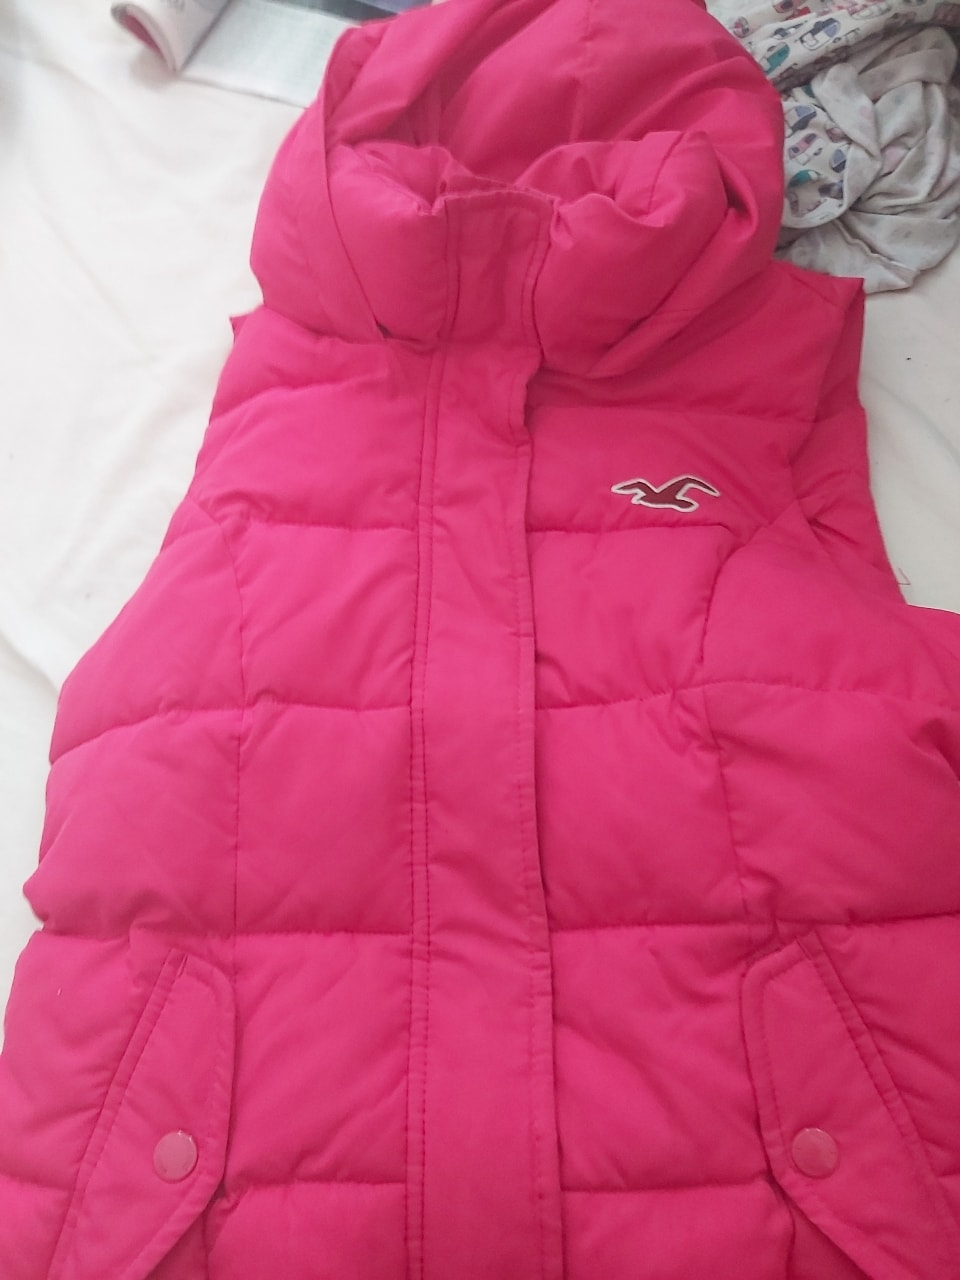 Small pink Holister Gilet size 8 to 10